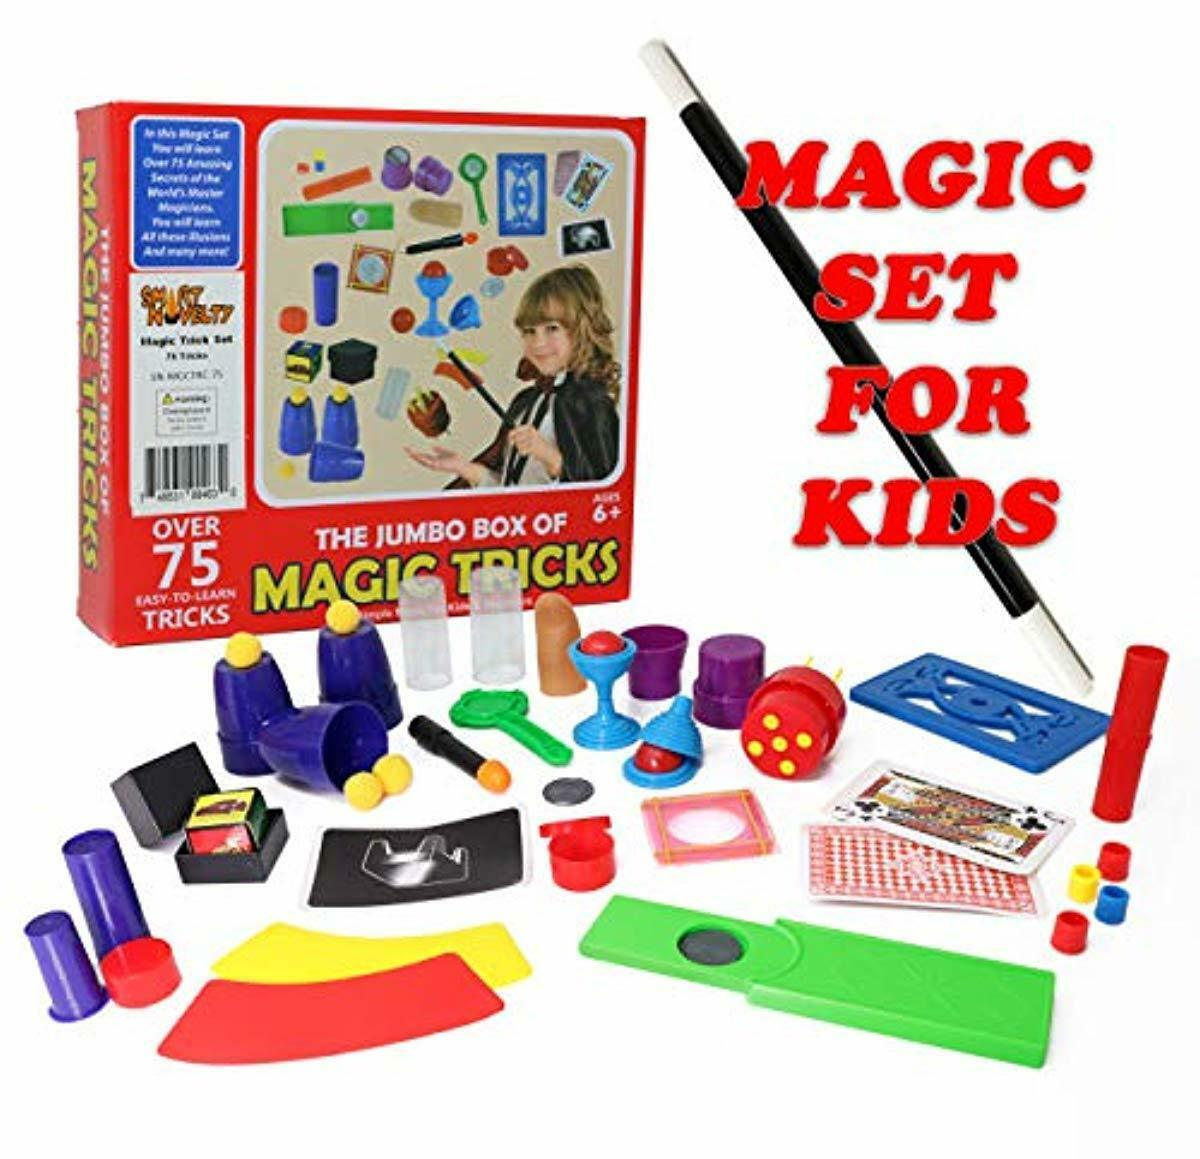 Magician, Set for Kids, Beginners Magic Tricks kit Novelty.